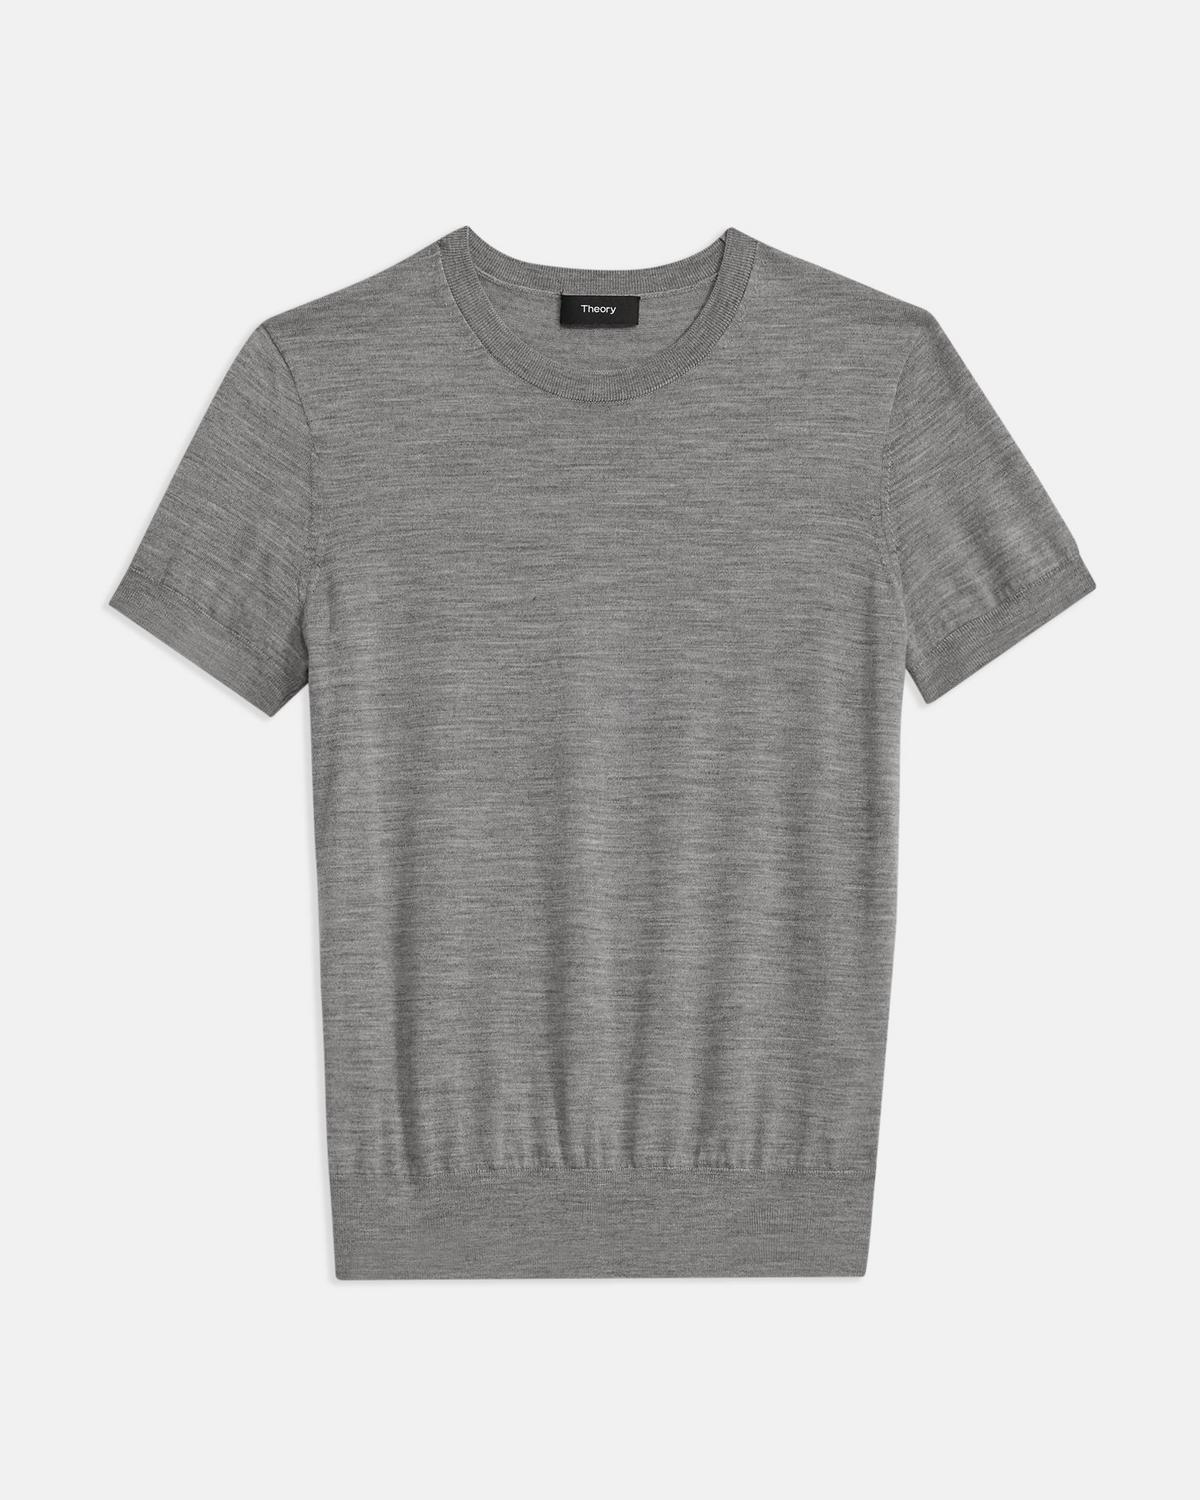 Regal Wool Basic Tee